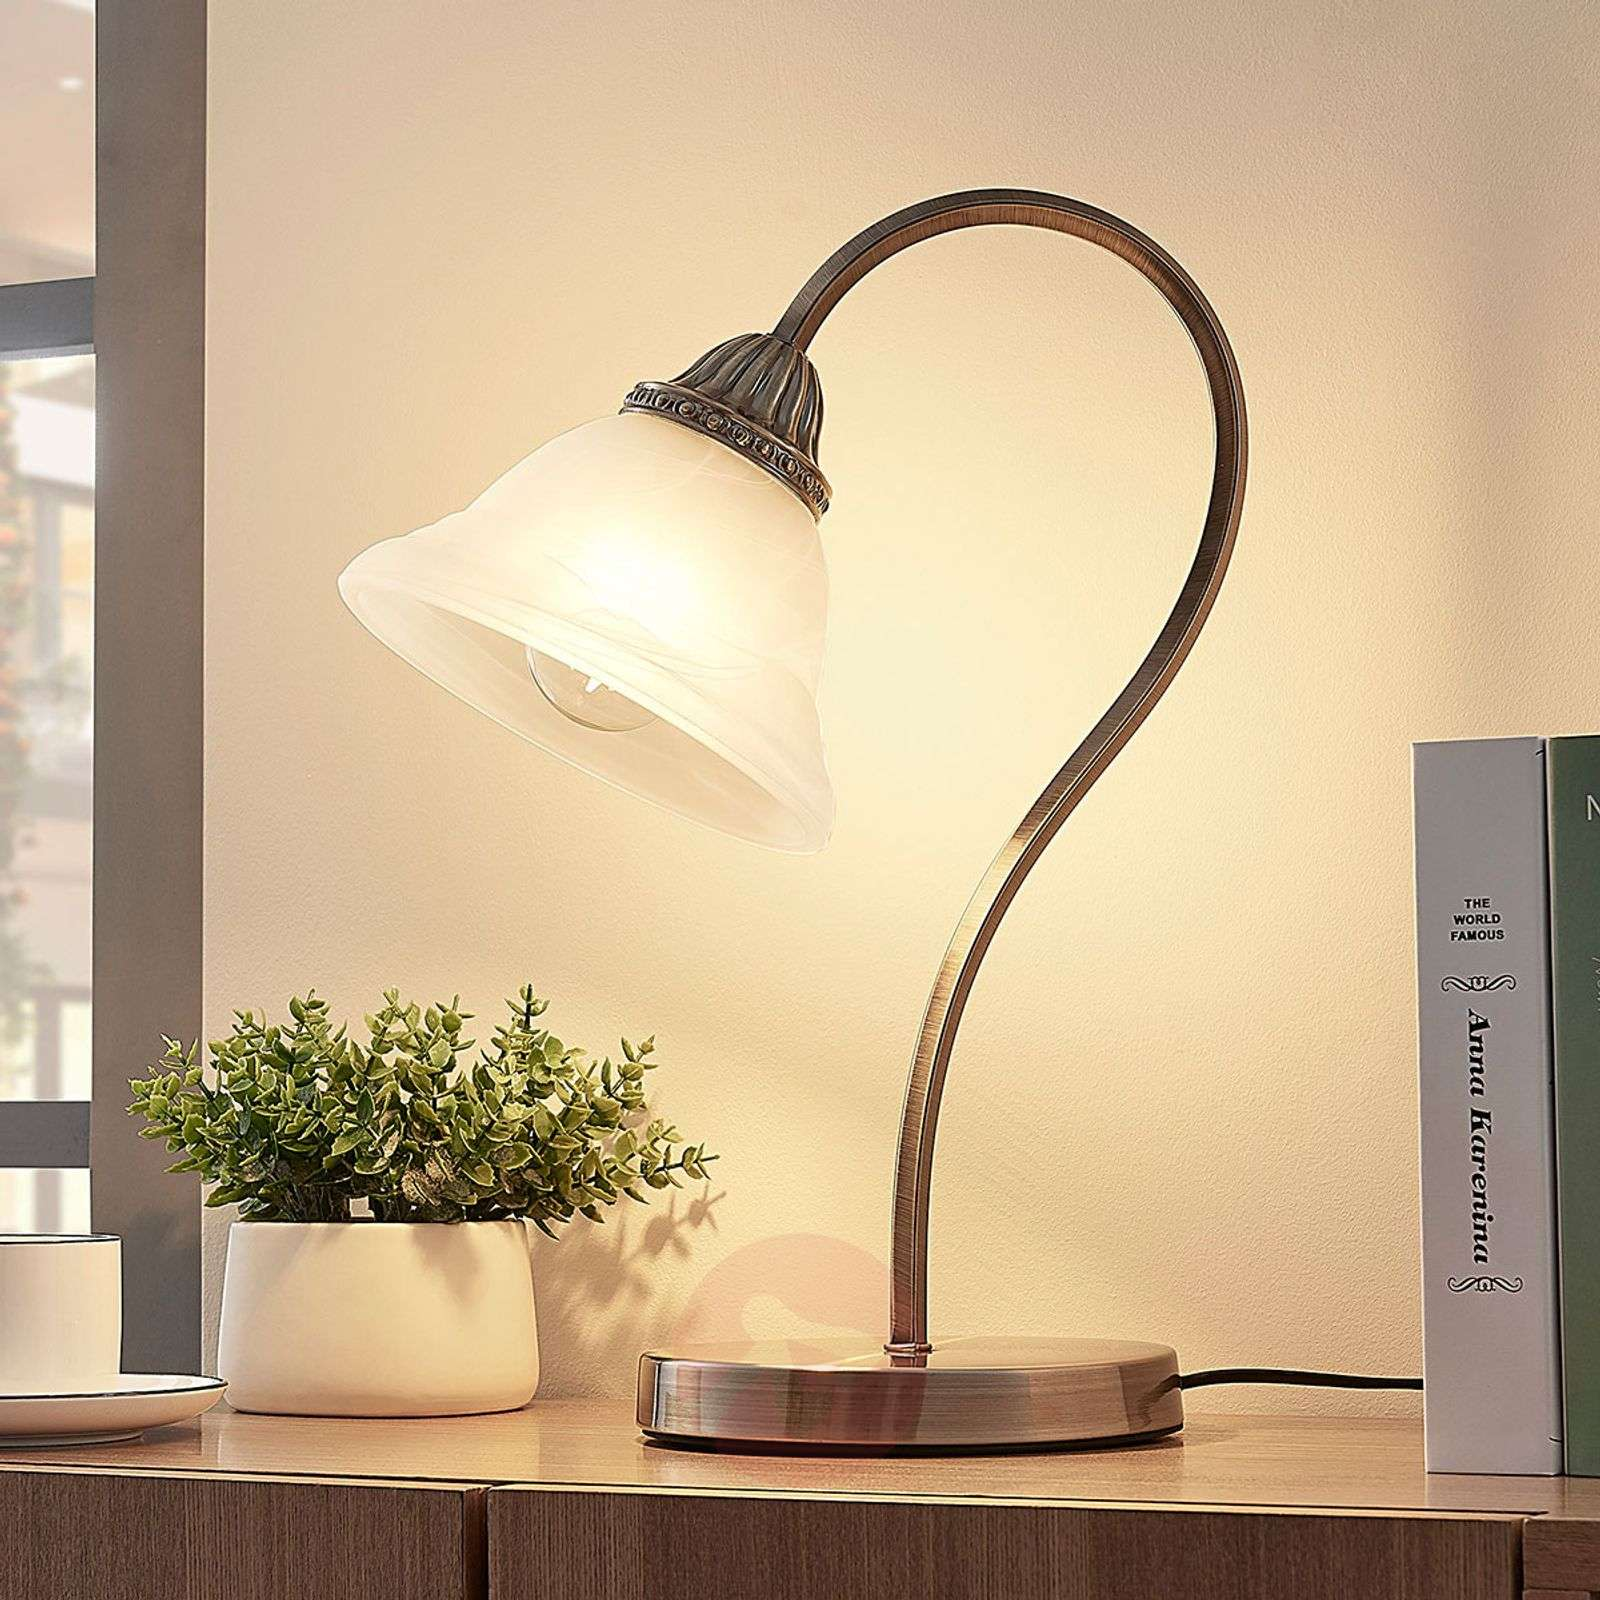 Curved table lamp Mialina with an E27 LED-9620341-016